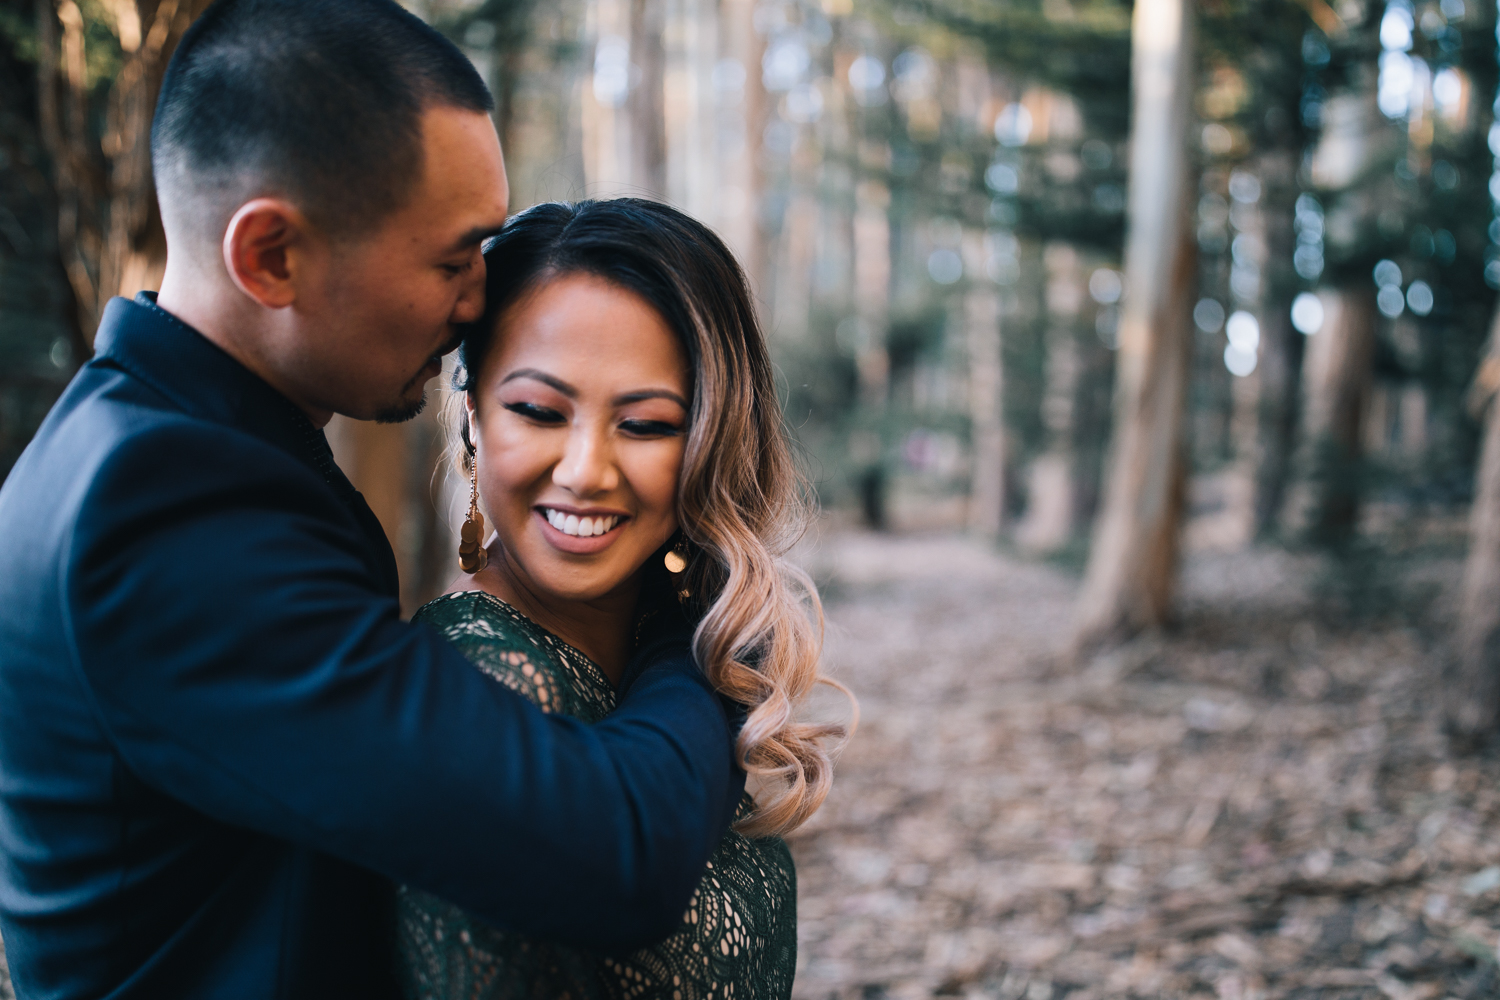 2018_11_ 042018.11.4 Leah + Ed Engagement Session Blog photos Edited For Web 0056.jpg